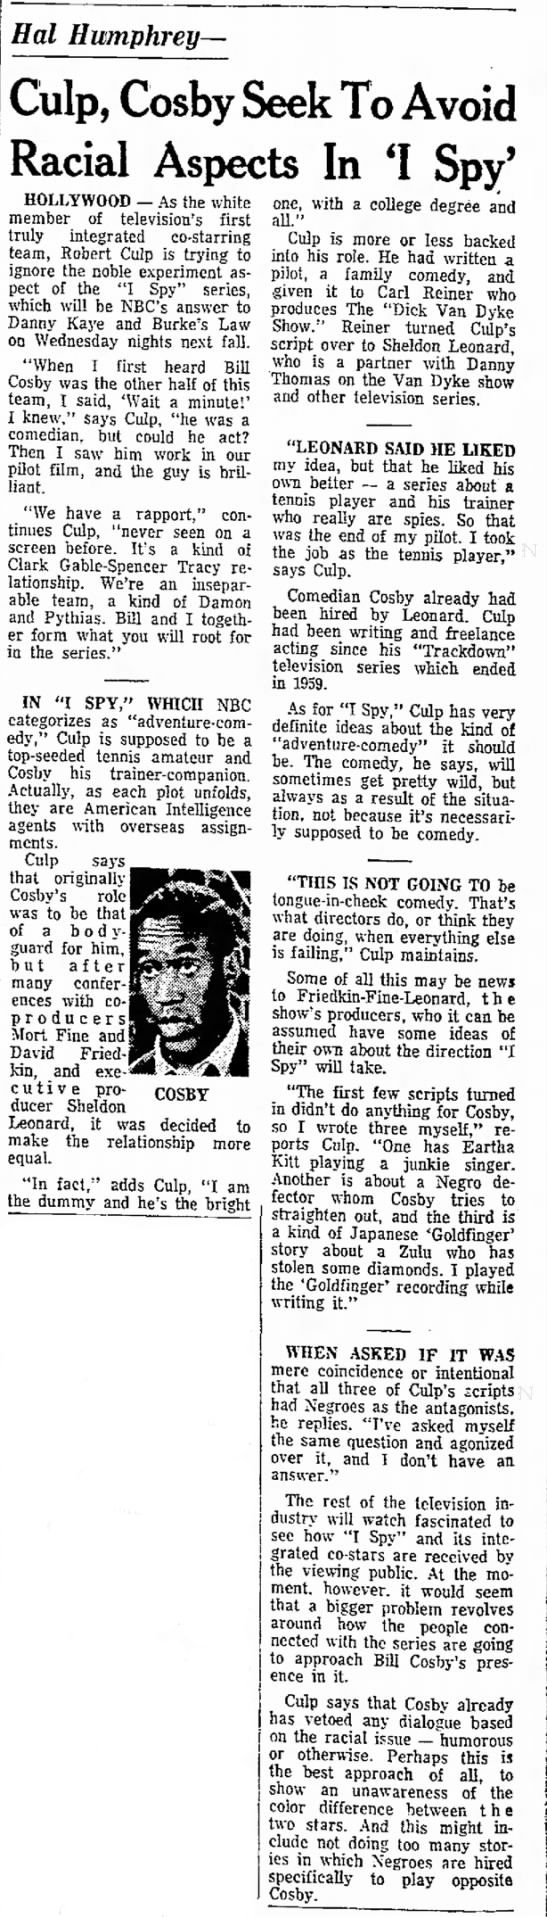 "Culp, Cosby Seek to Avoid Racial Aspects in ""I Spy"" - May 17, 1965"